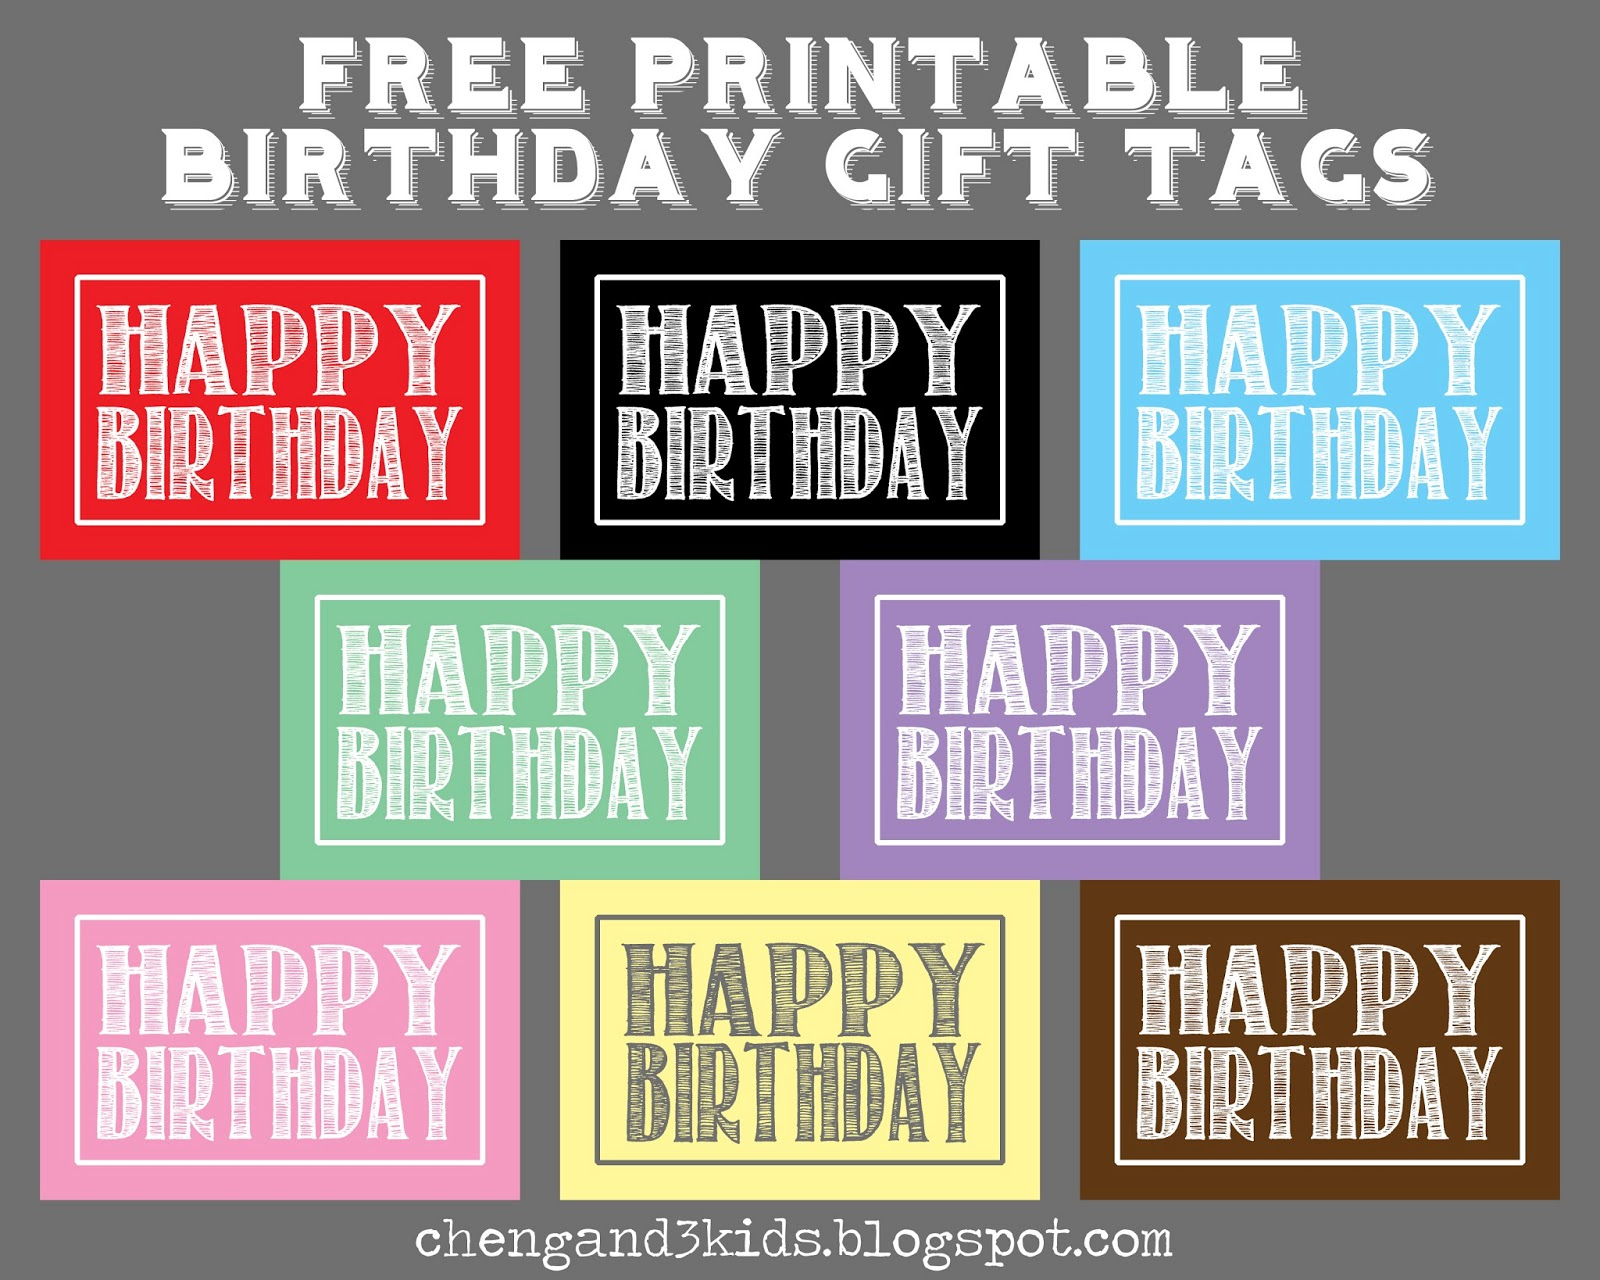 Cheng And 3 Kids: Free Printable Birthday Gift Tags - Free Printable Birthday Tags